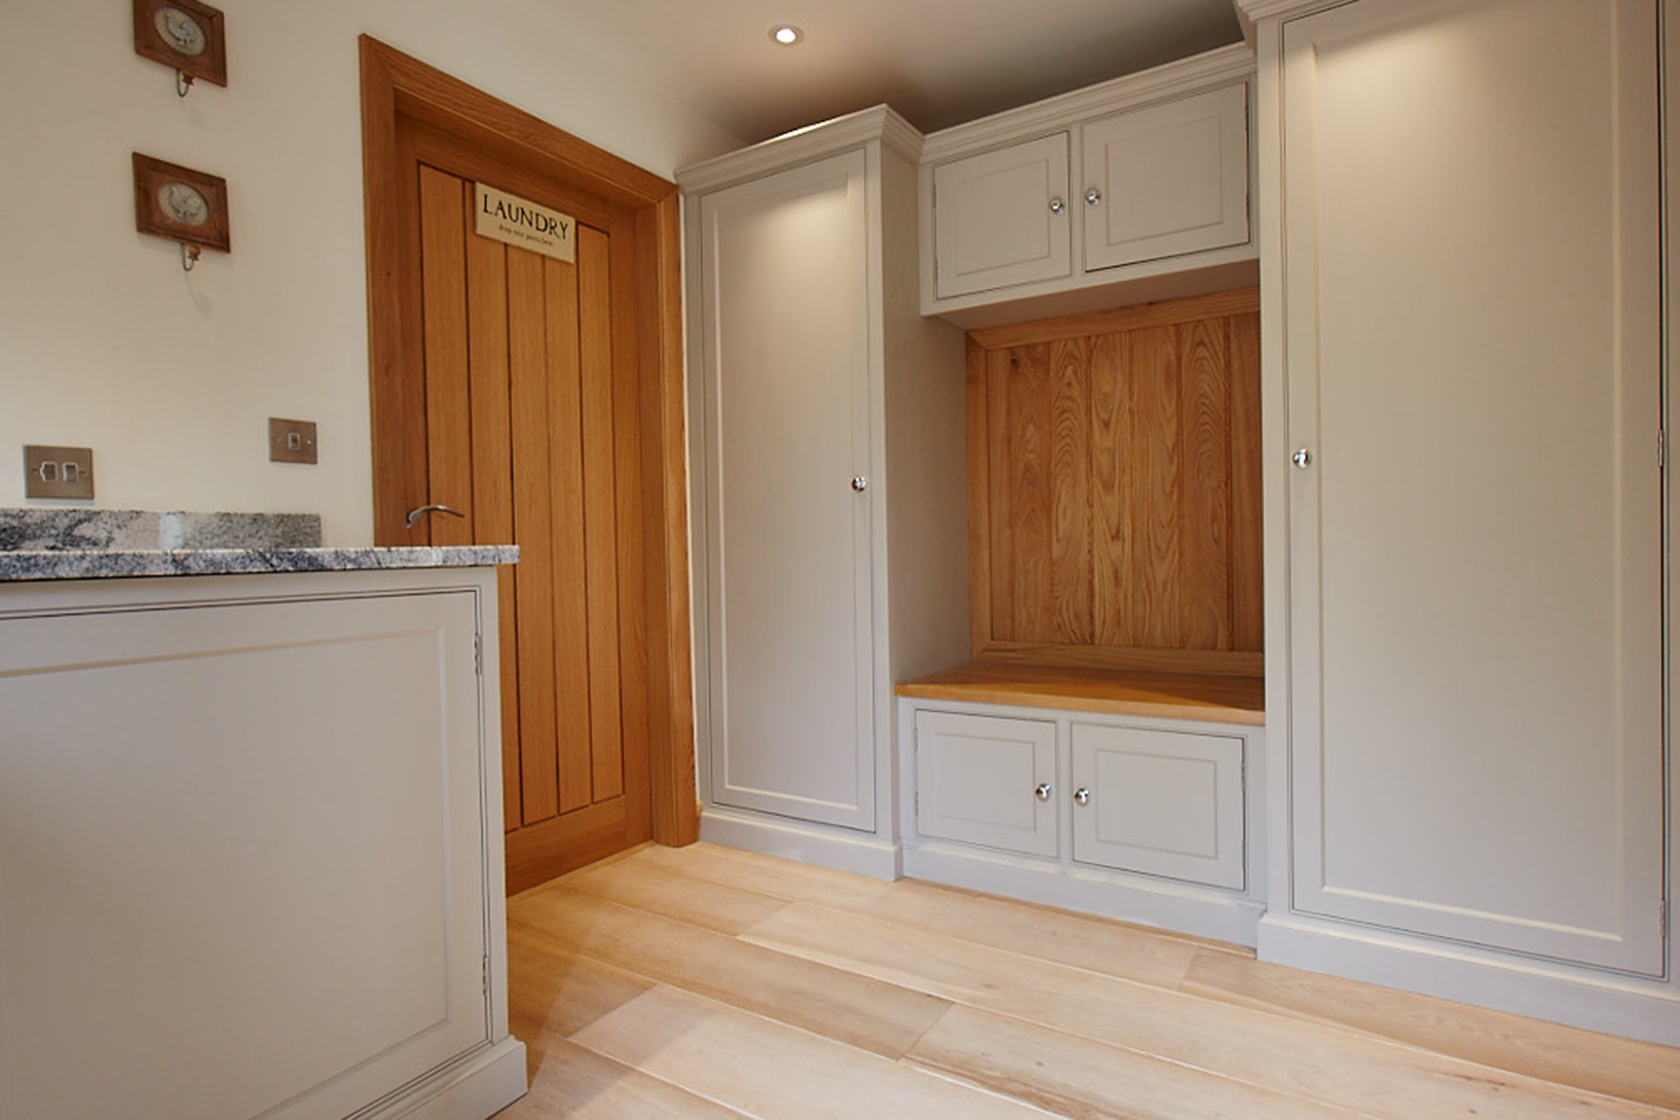 Laundry room with fitted units and seating area made from solid oak